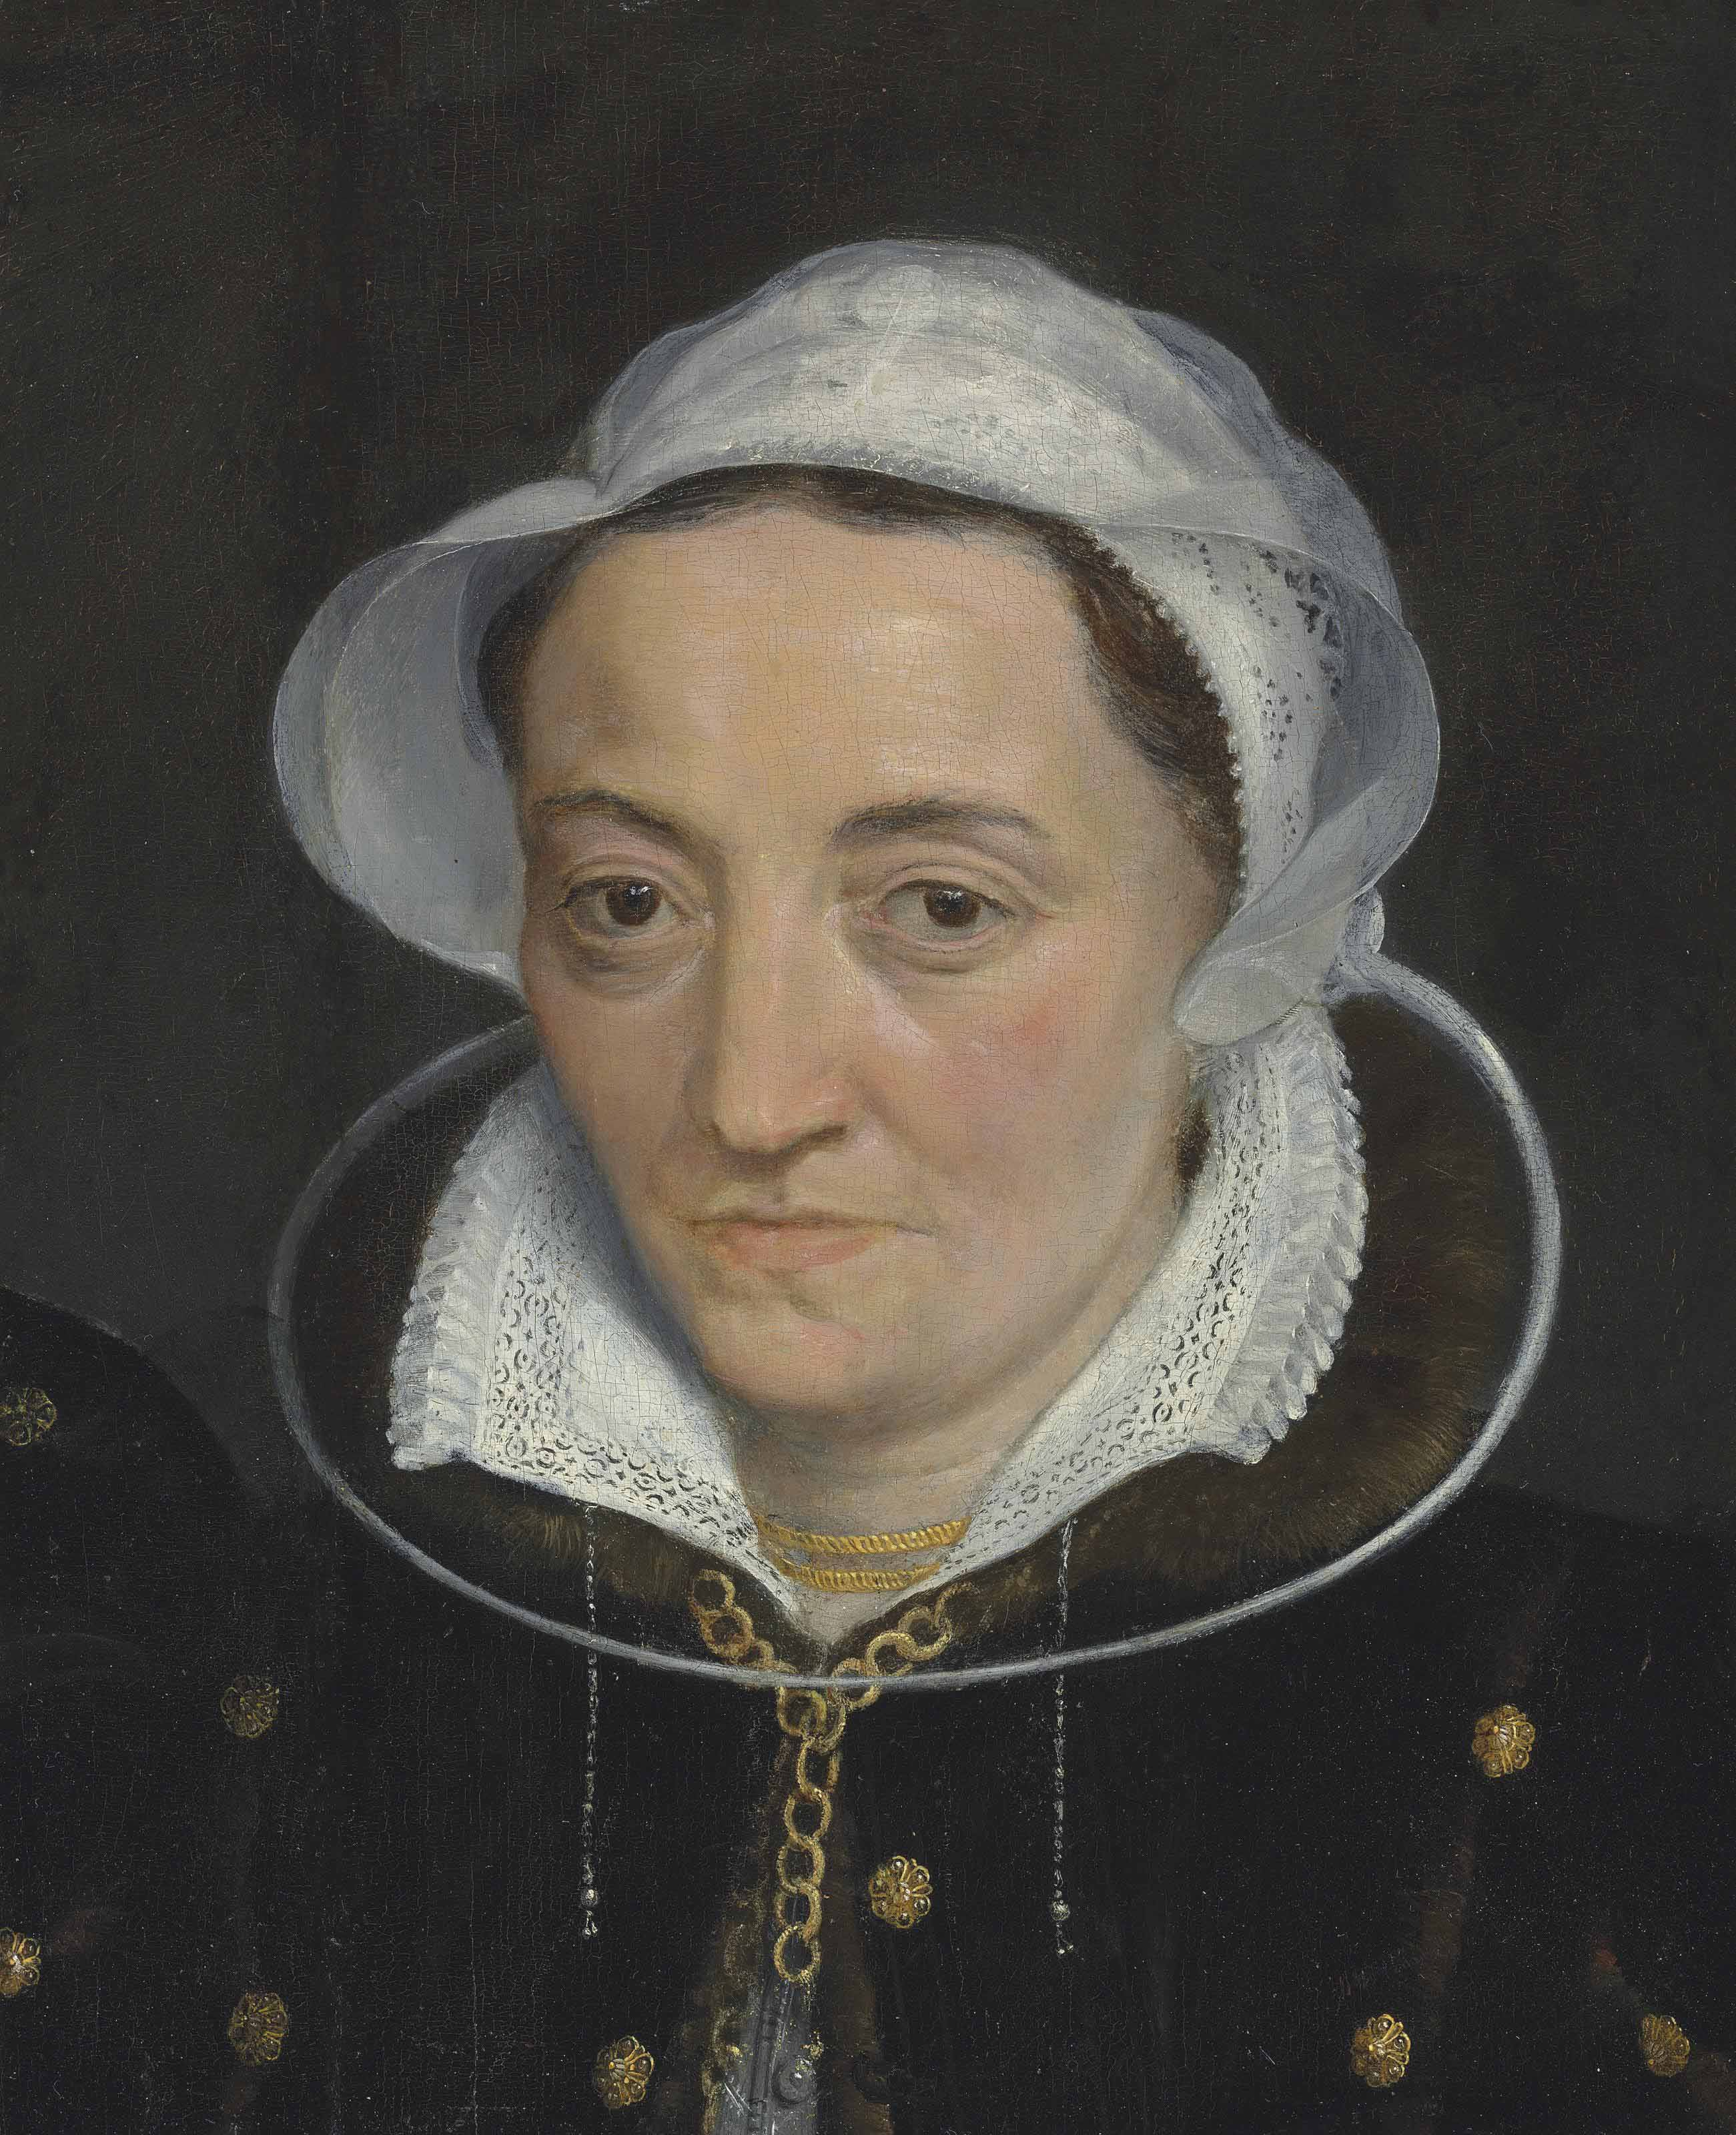 Portrait of a lady, bust-length, in a black fur-lined coat with gold fittings, a gold necklace and a white cap